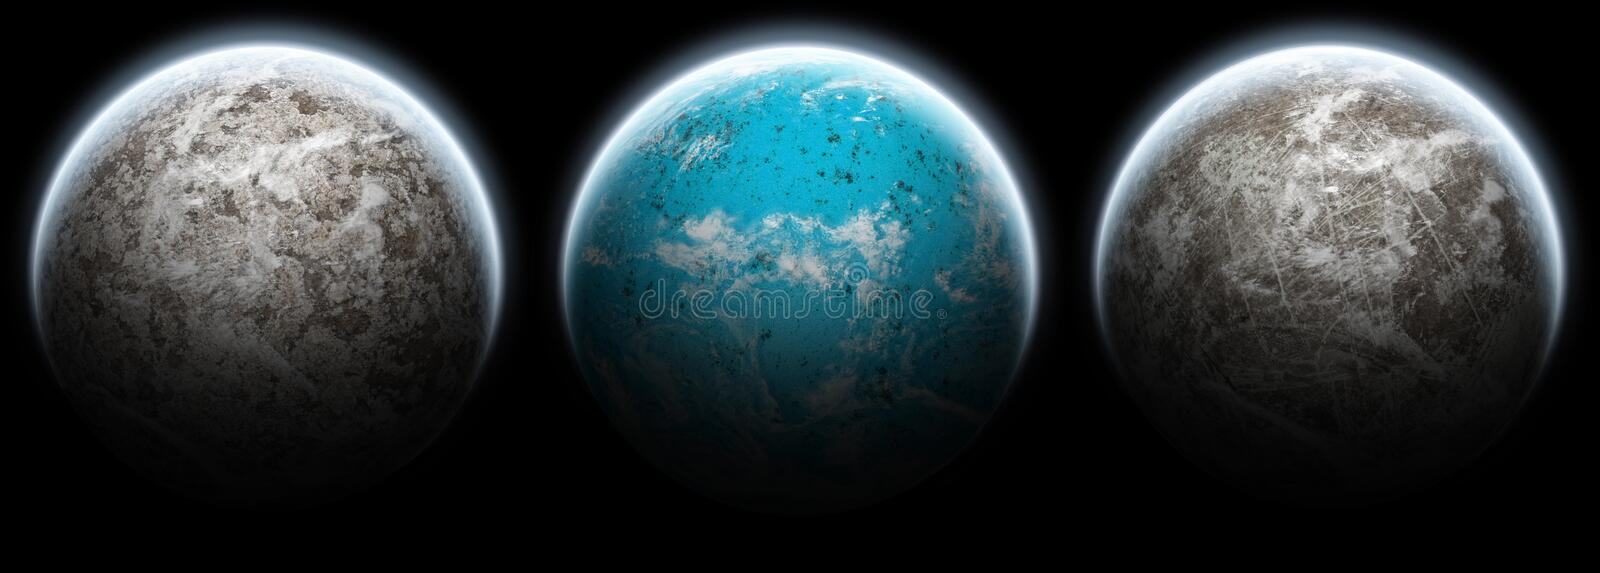 Set of 3 planets moons on a black background stock illustration